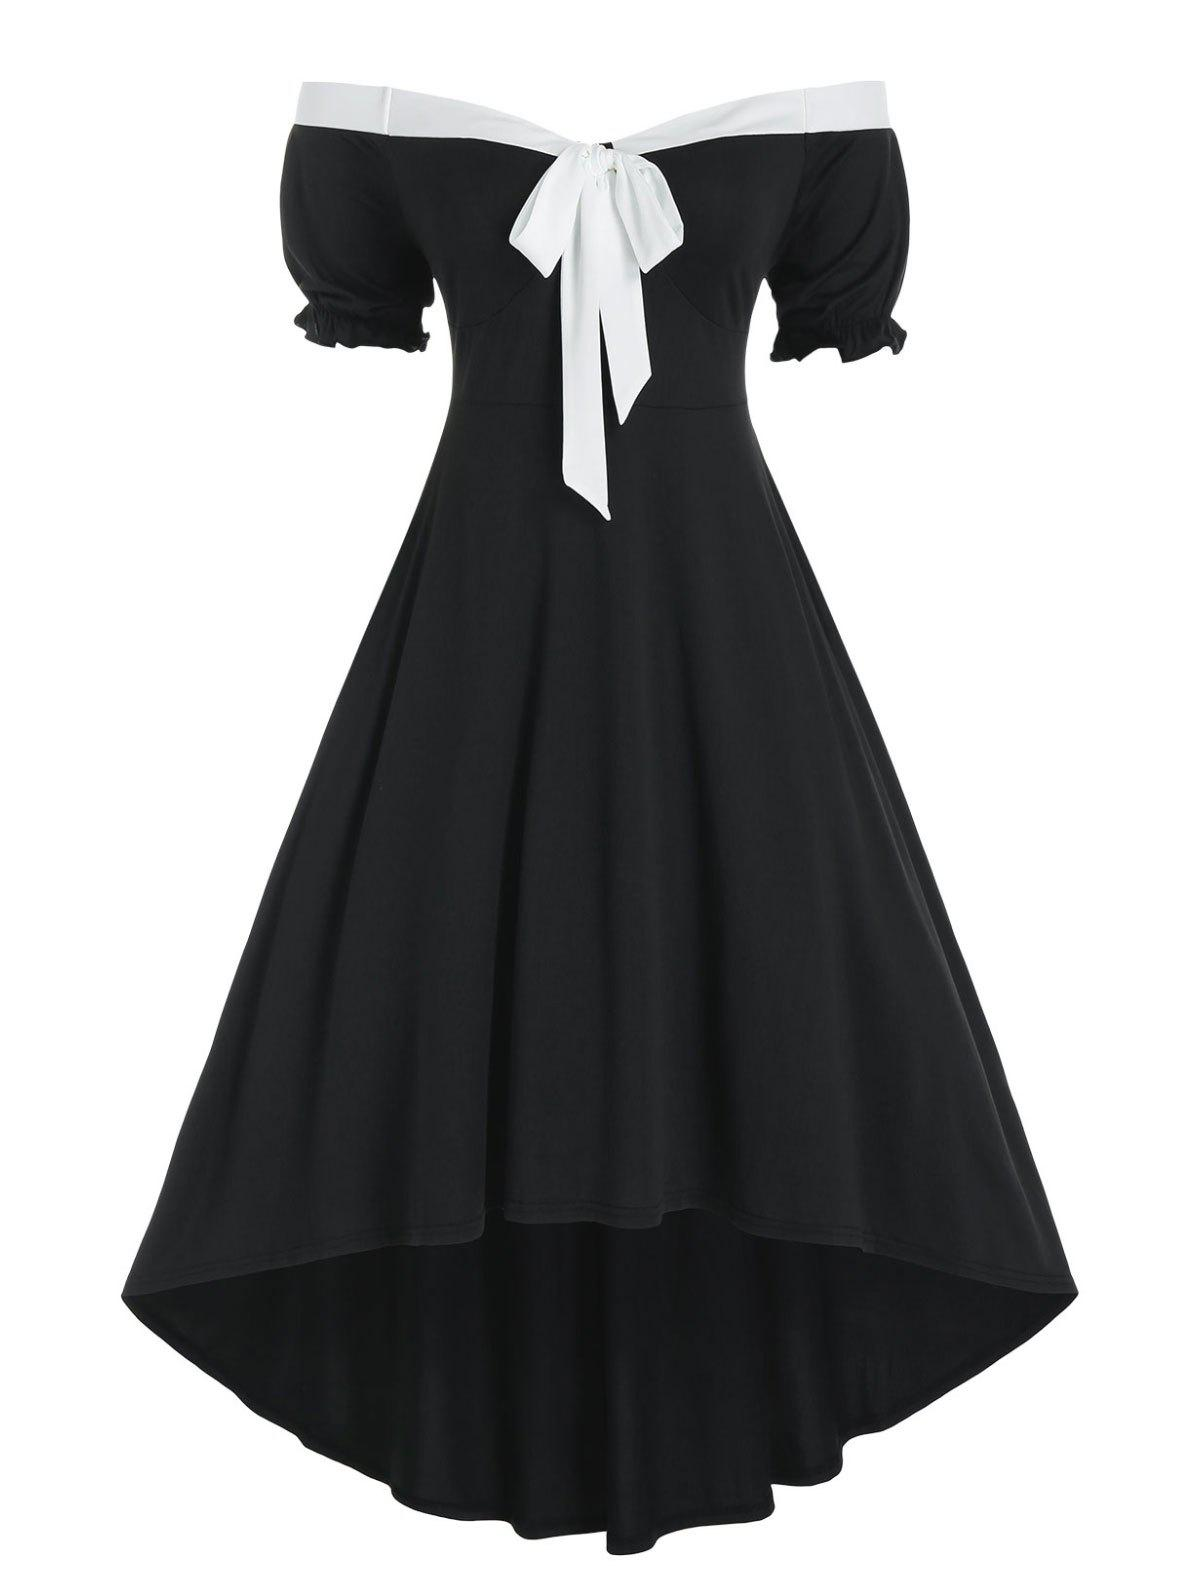 Plus Size Bicolor Off The Shoulder Puff Sleeve Dress - BLACK 5X